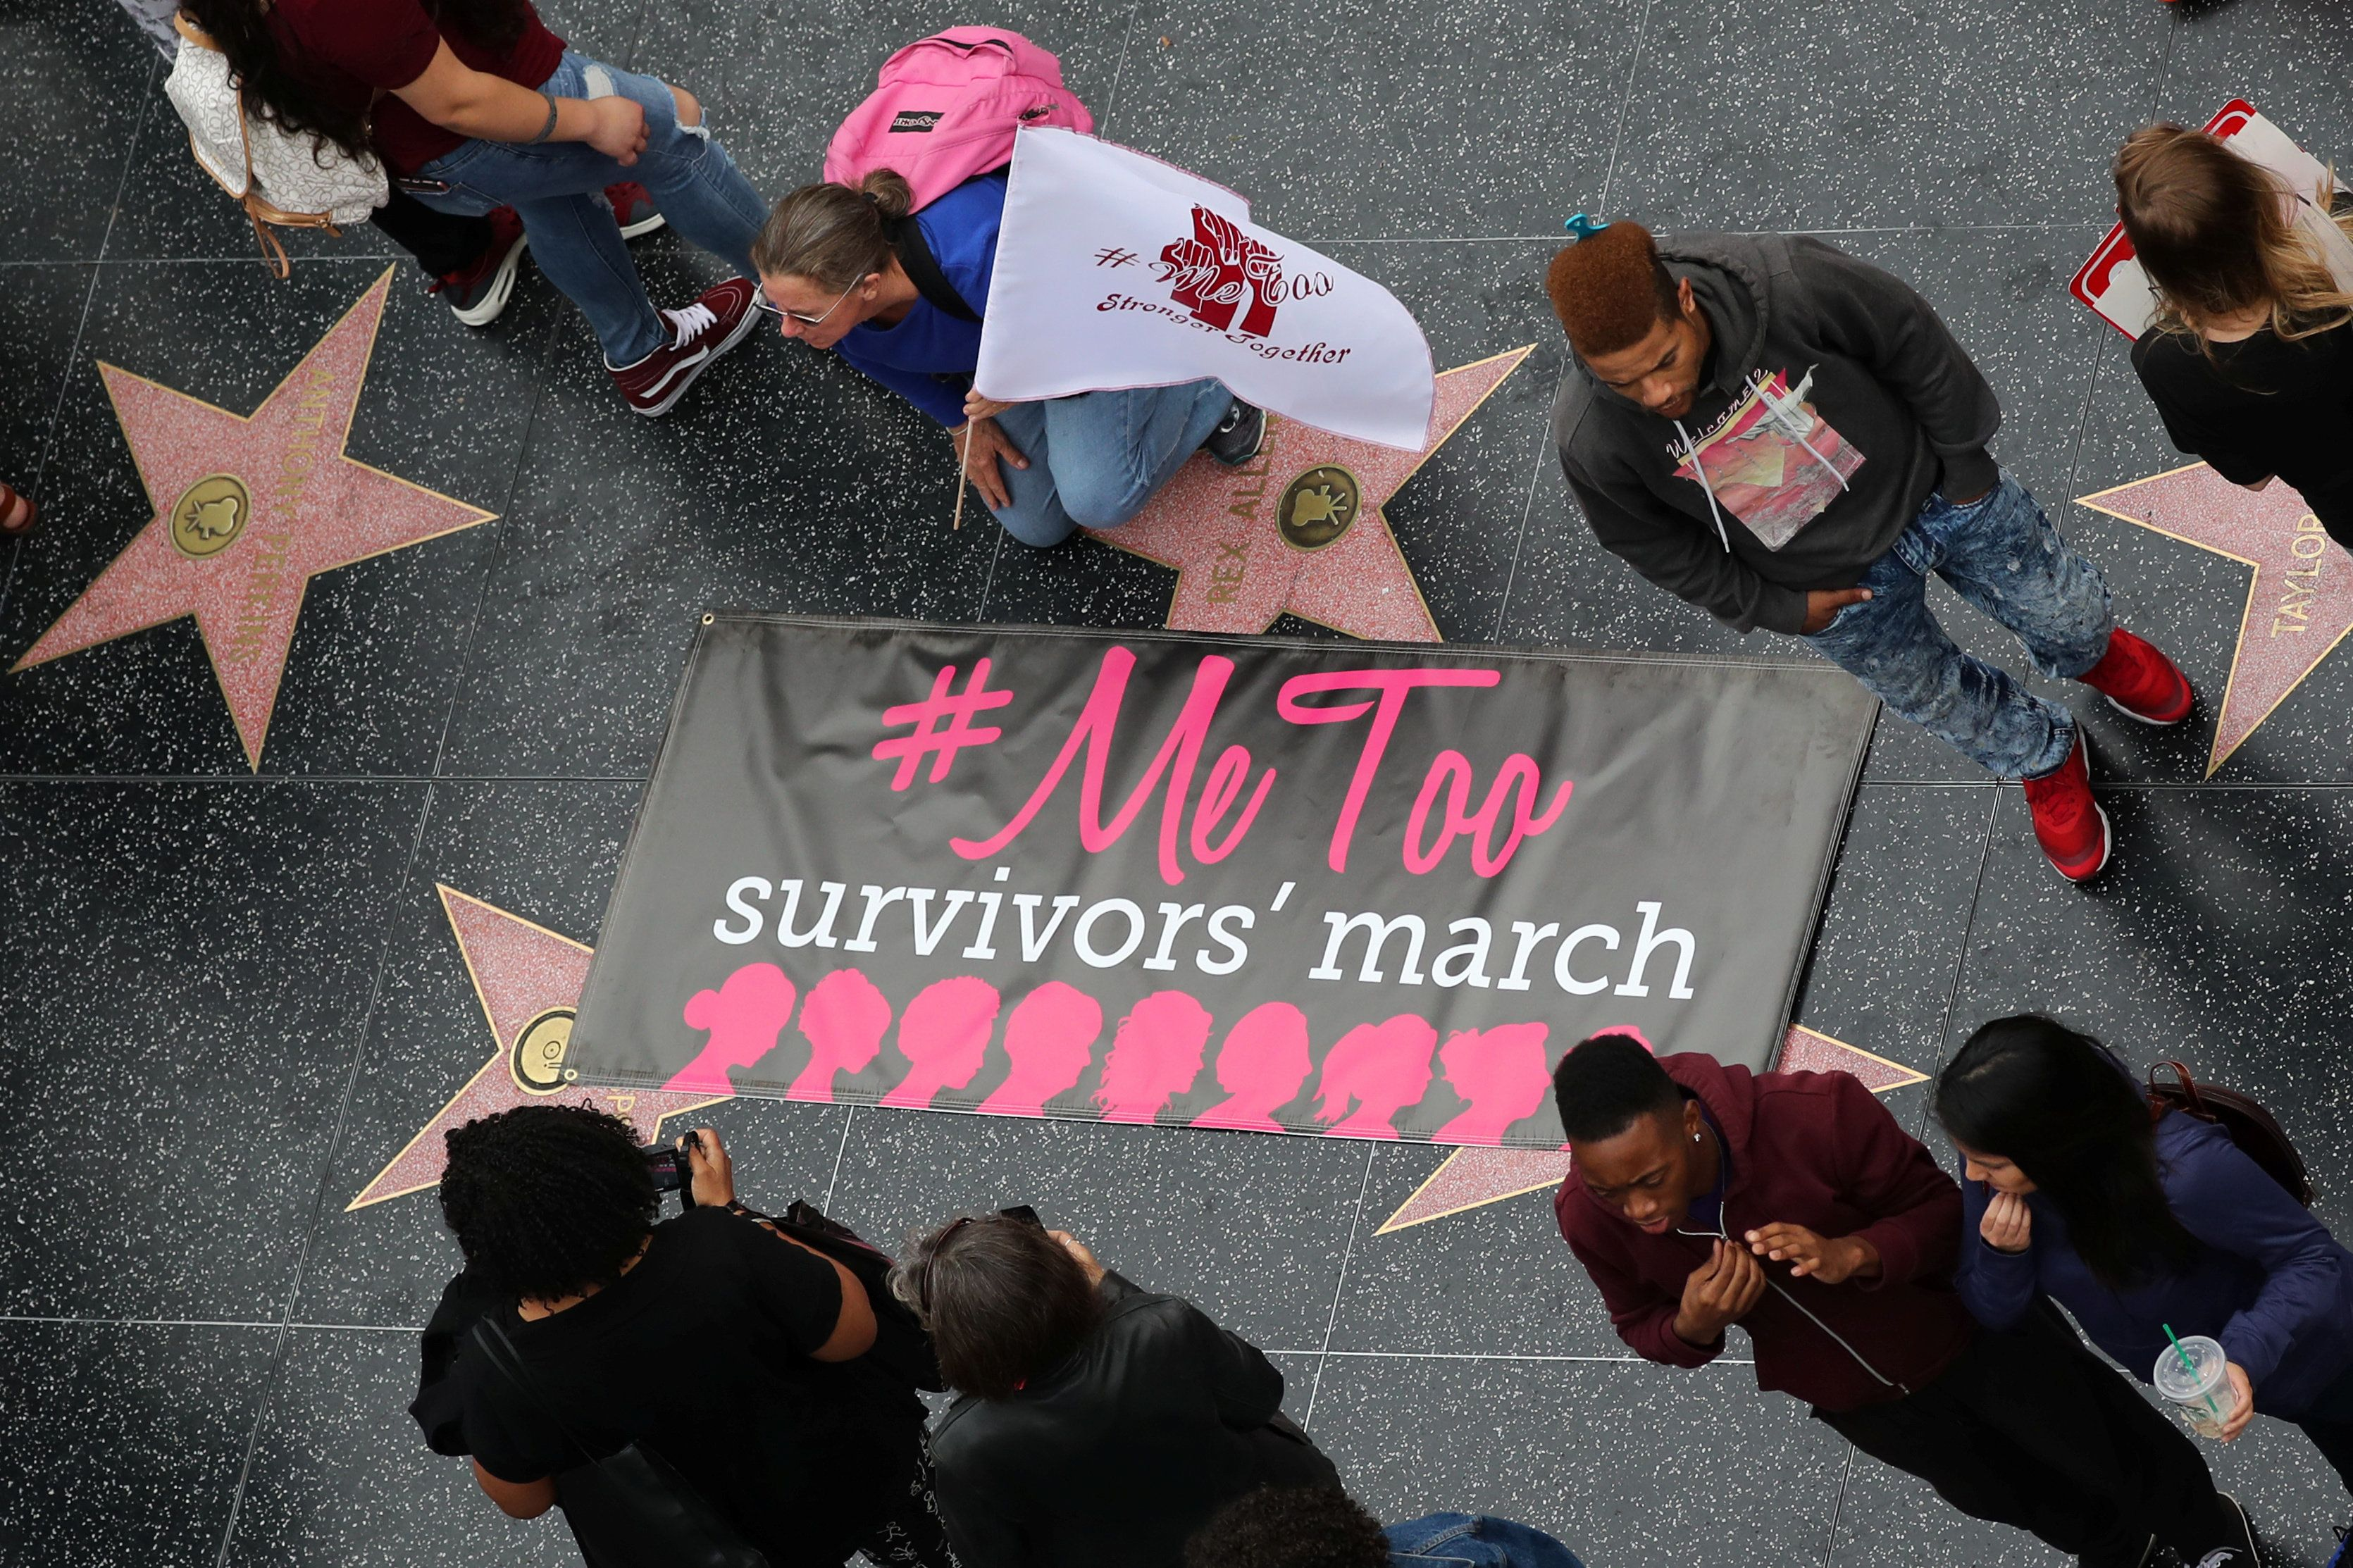 Women take part in a #MeToo protest march for survivors of sexual assault and their supporters in Hollywood, Los Angeles, California U.S. November 12, 2017. REUTERS/Lucy Nicholson